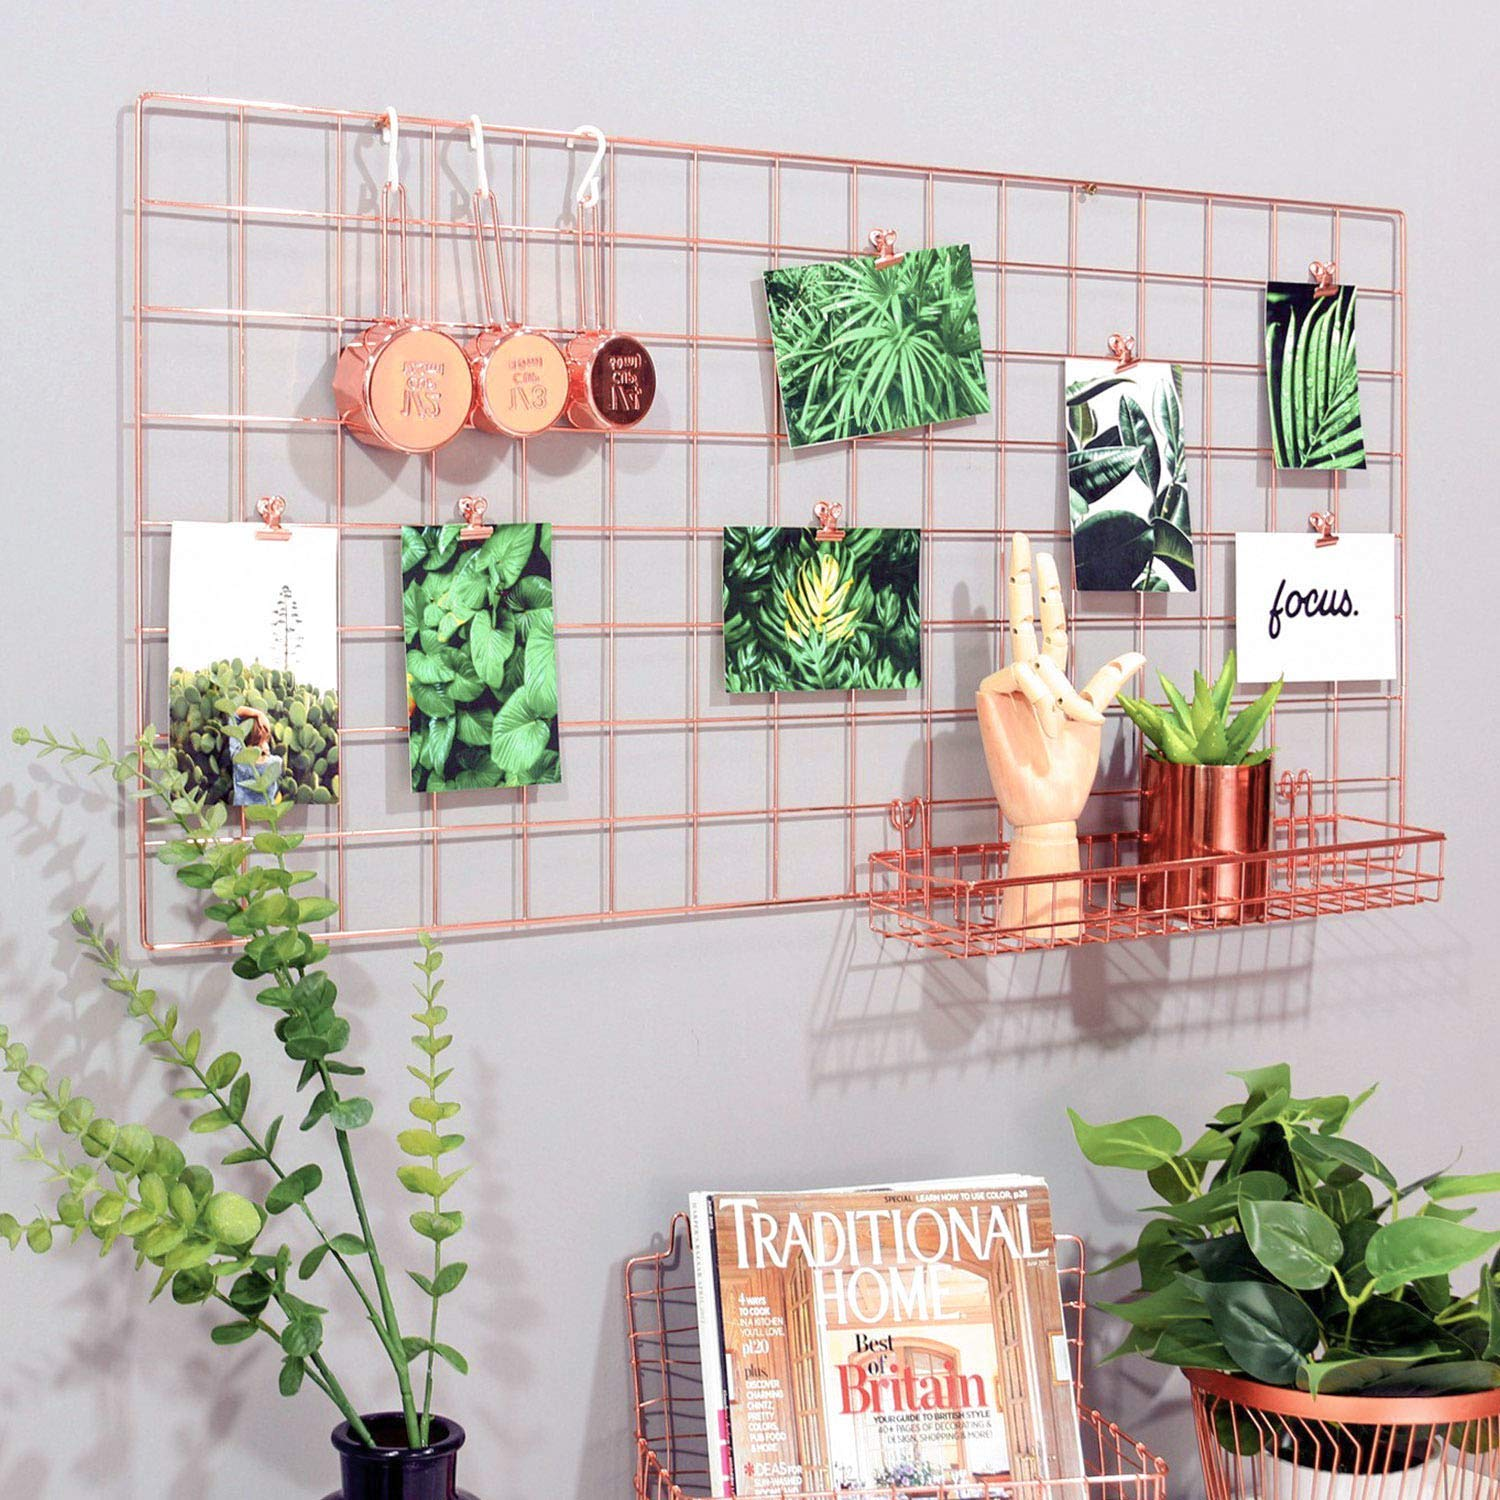 AIKOS Wall Grid, Grid Panel for Photo Hanging Display & Wall Decoration Organizer, Multifunctional Wall Storage Display Grid, 5 Clips & 4 Nails Offered, Size 37.4'' x 17.7'', Rose Gold